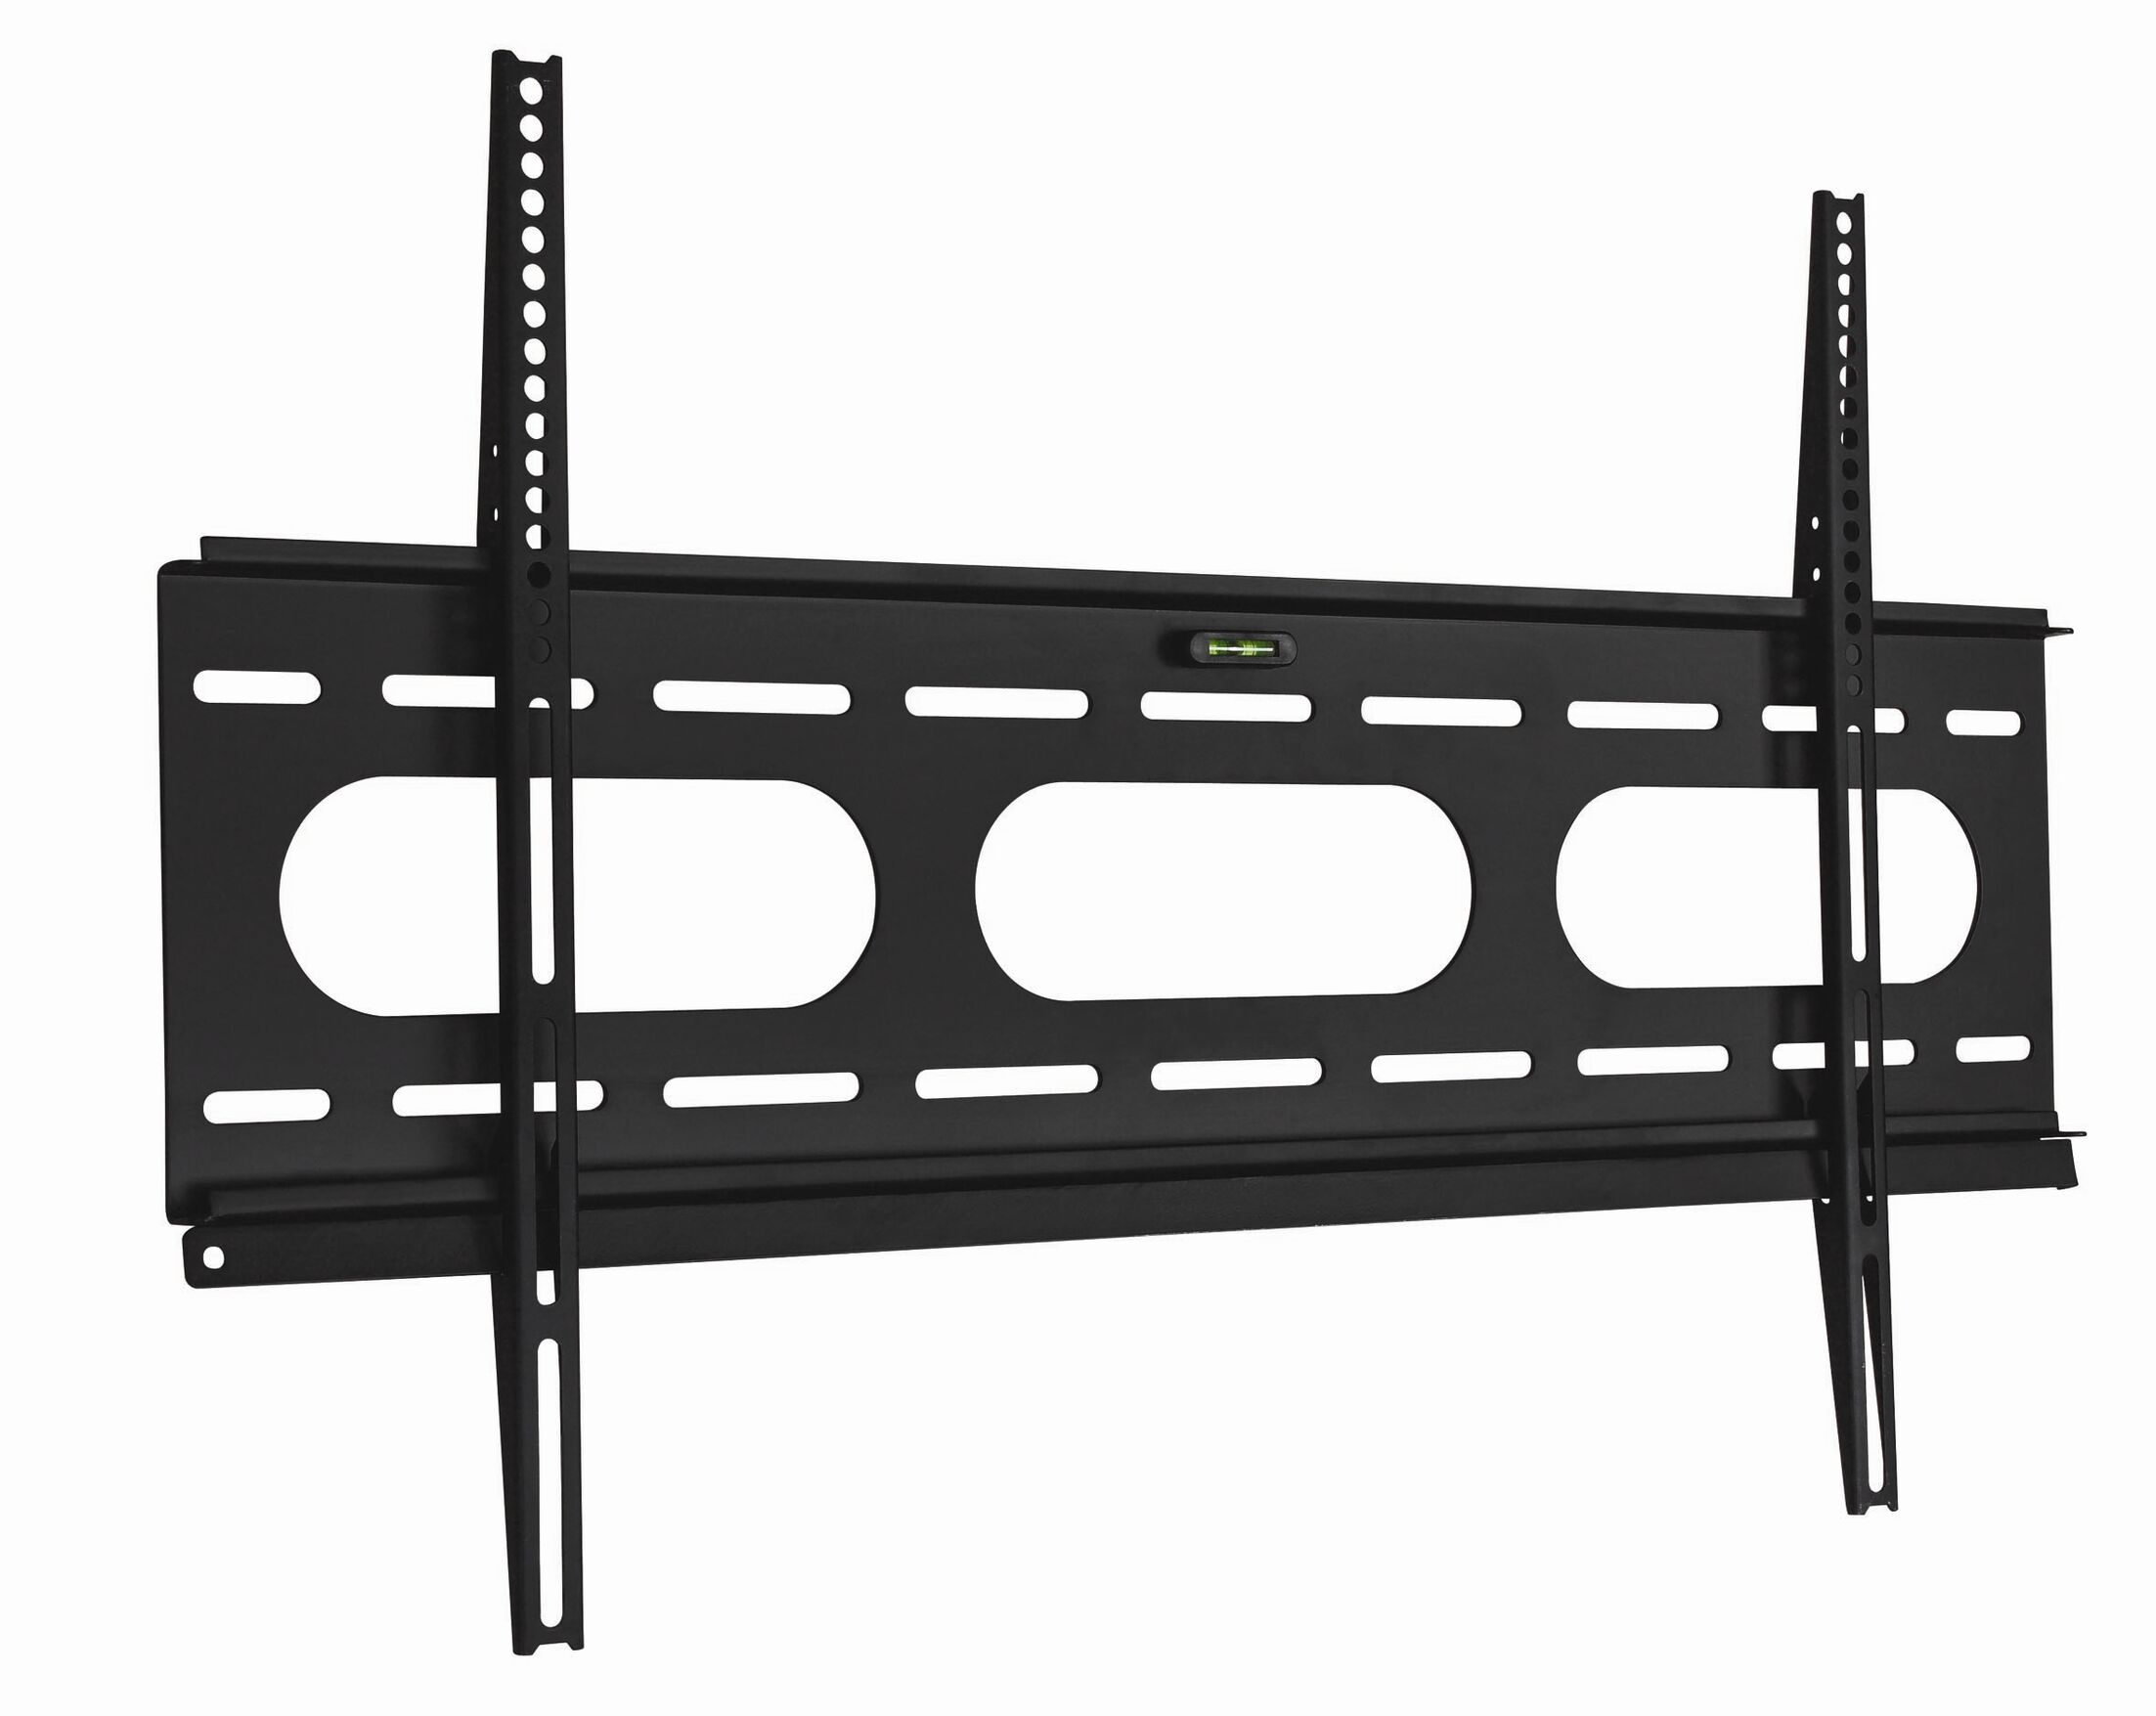 Have you been searching for an ultra slim LCD/Plasma TV Mount? Look no further as the Ready Set Mount is the perfect mount solution! This mount offers a very discreet and slim line installation for your LCD and/or Plasma TV up to 165 lbs. The wall in ...